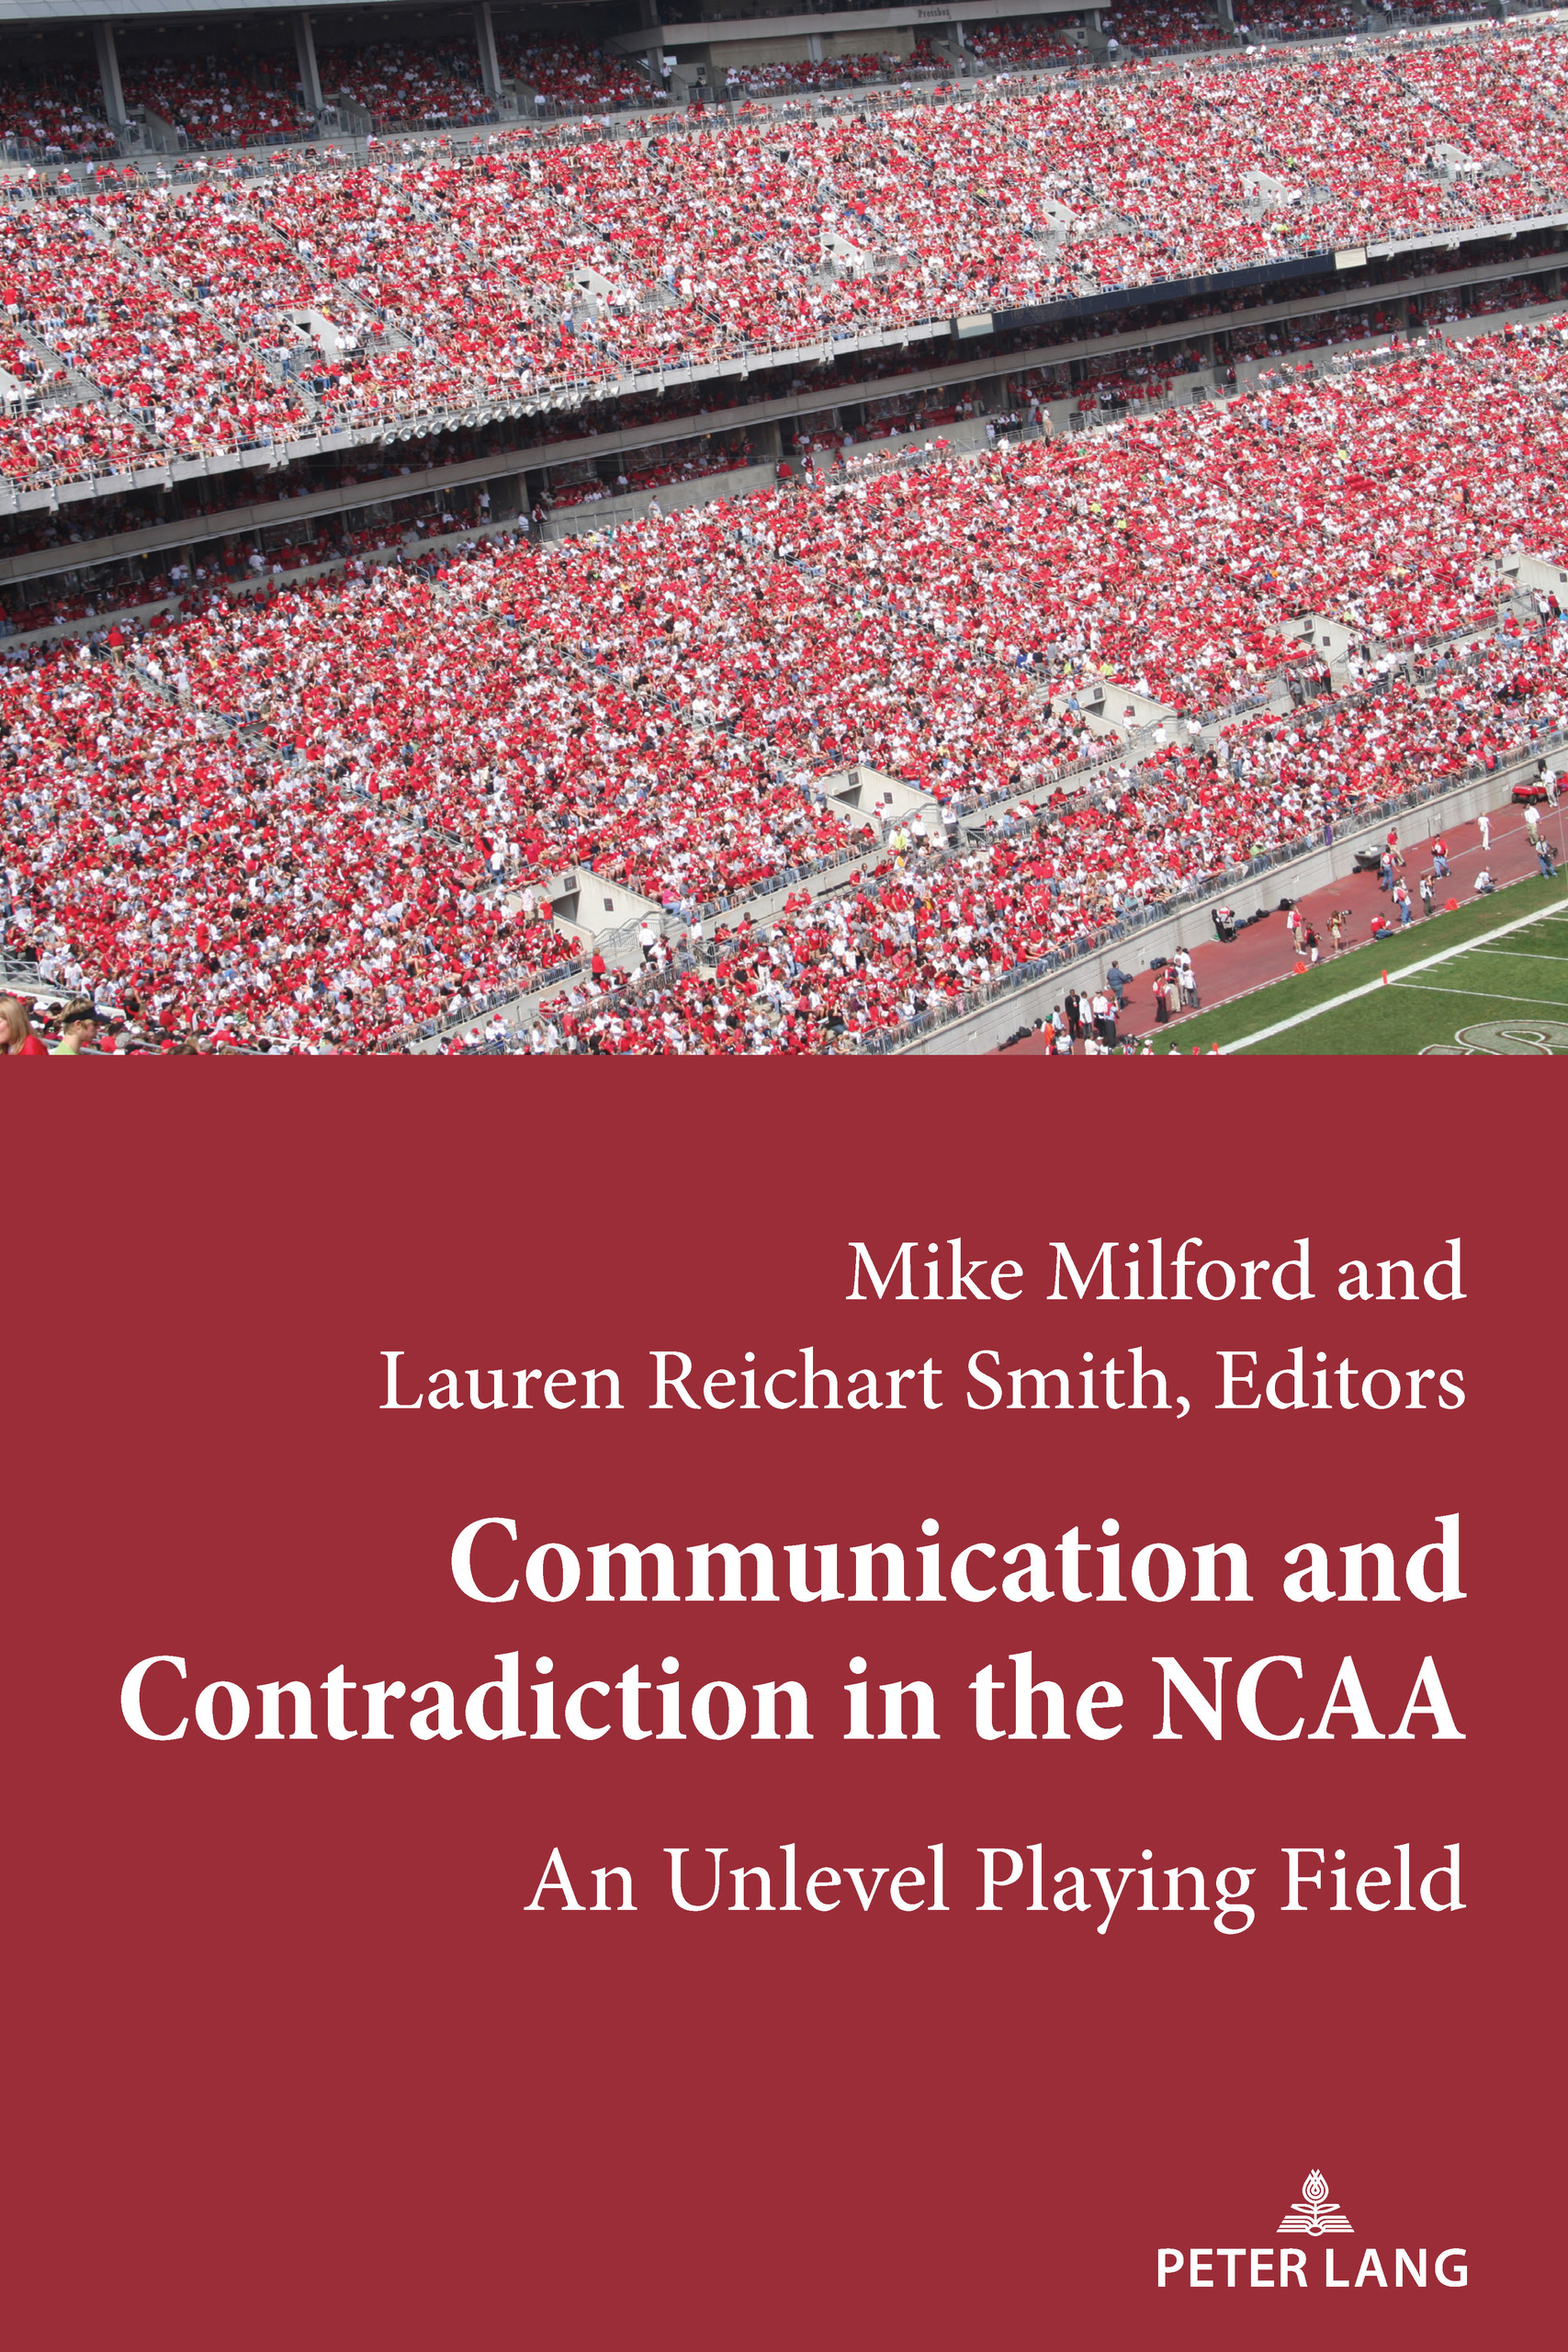 Title: Communication and Contradiction in the NCAA